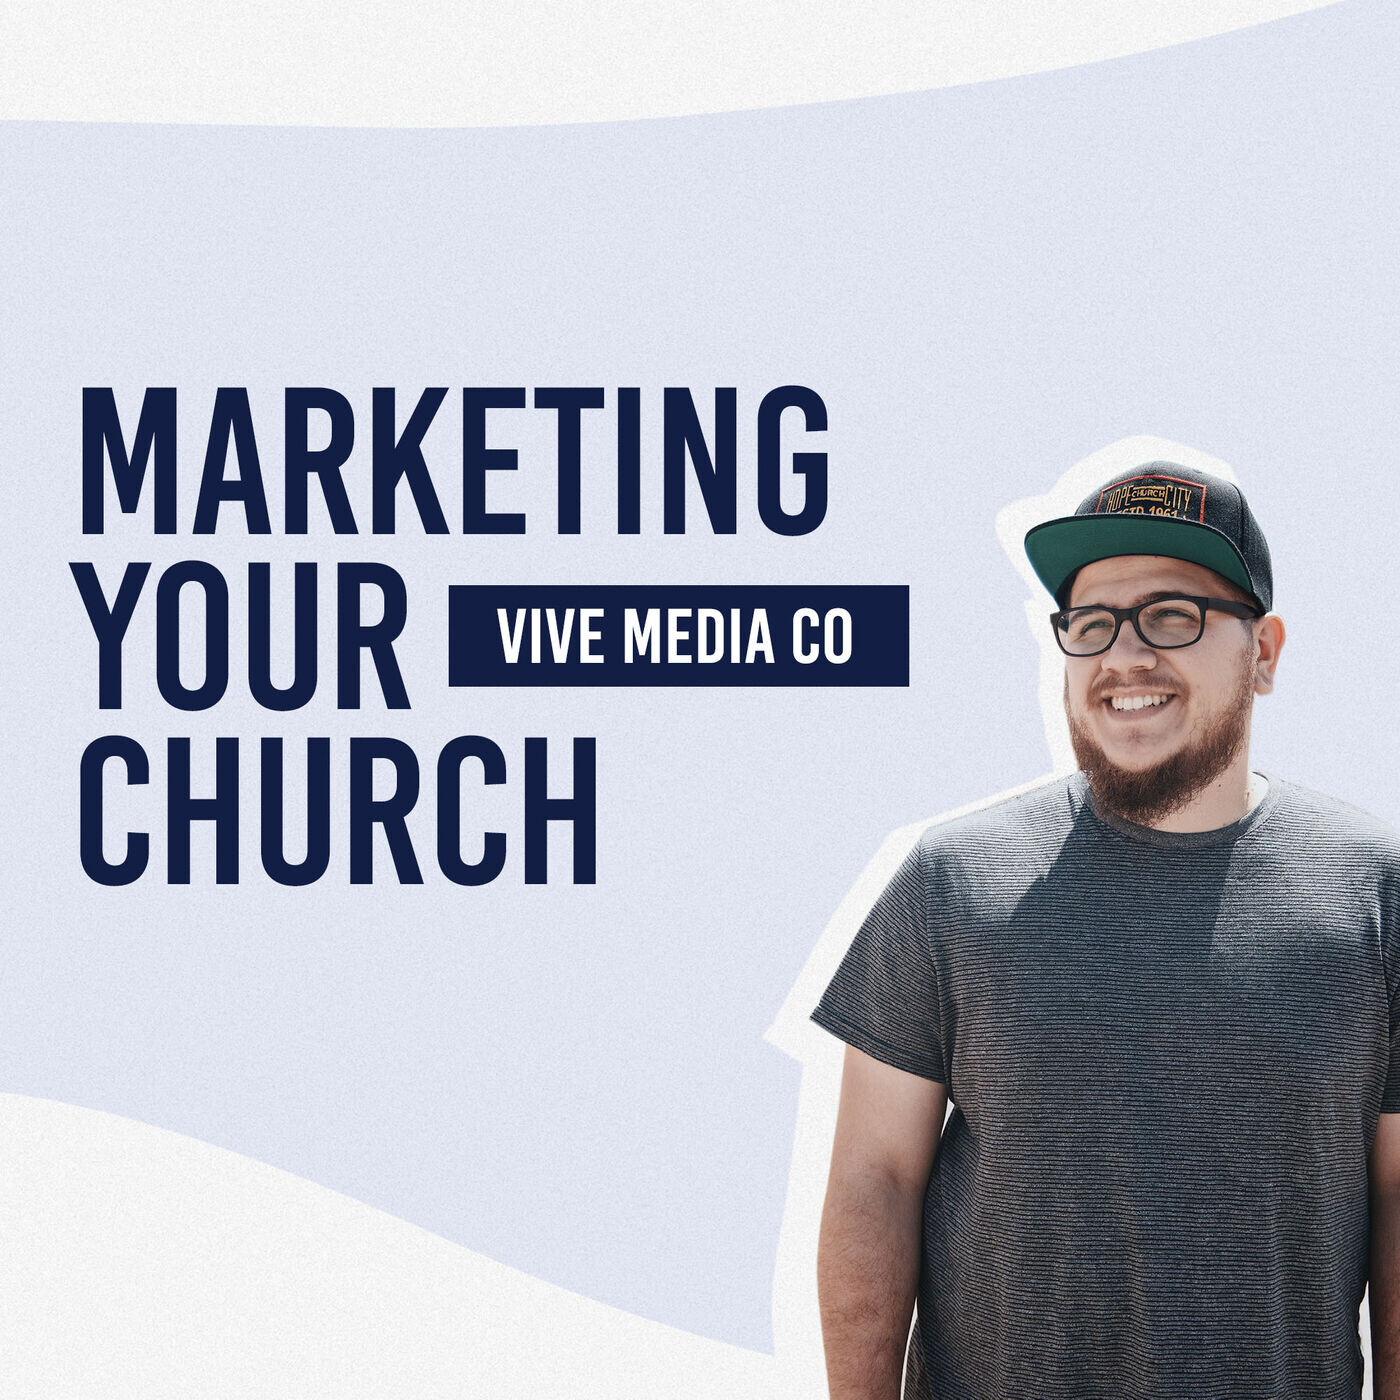 COMING SOON! Marketing Your Church With Vive Media Co